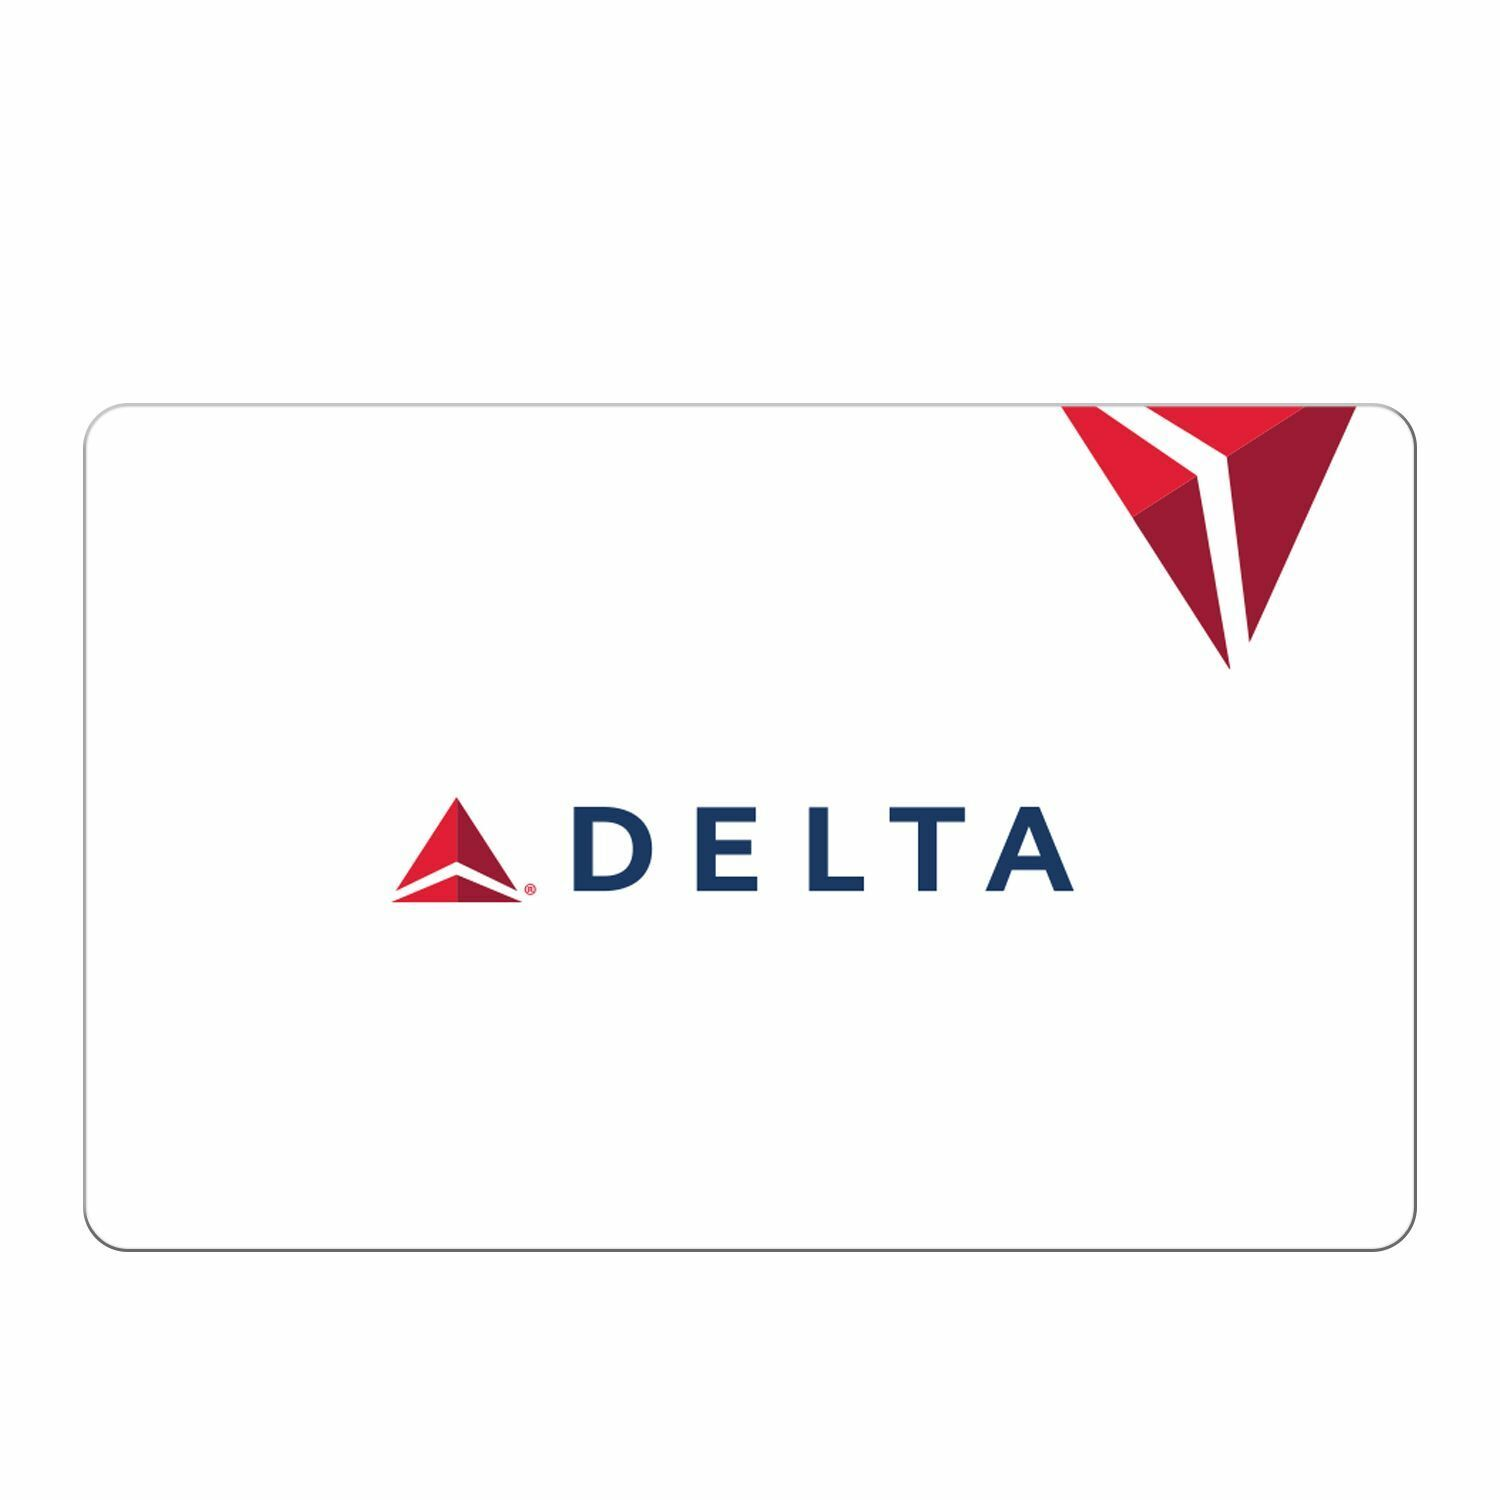 100 Delta Airlines Gift Card - $77.00